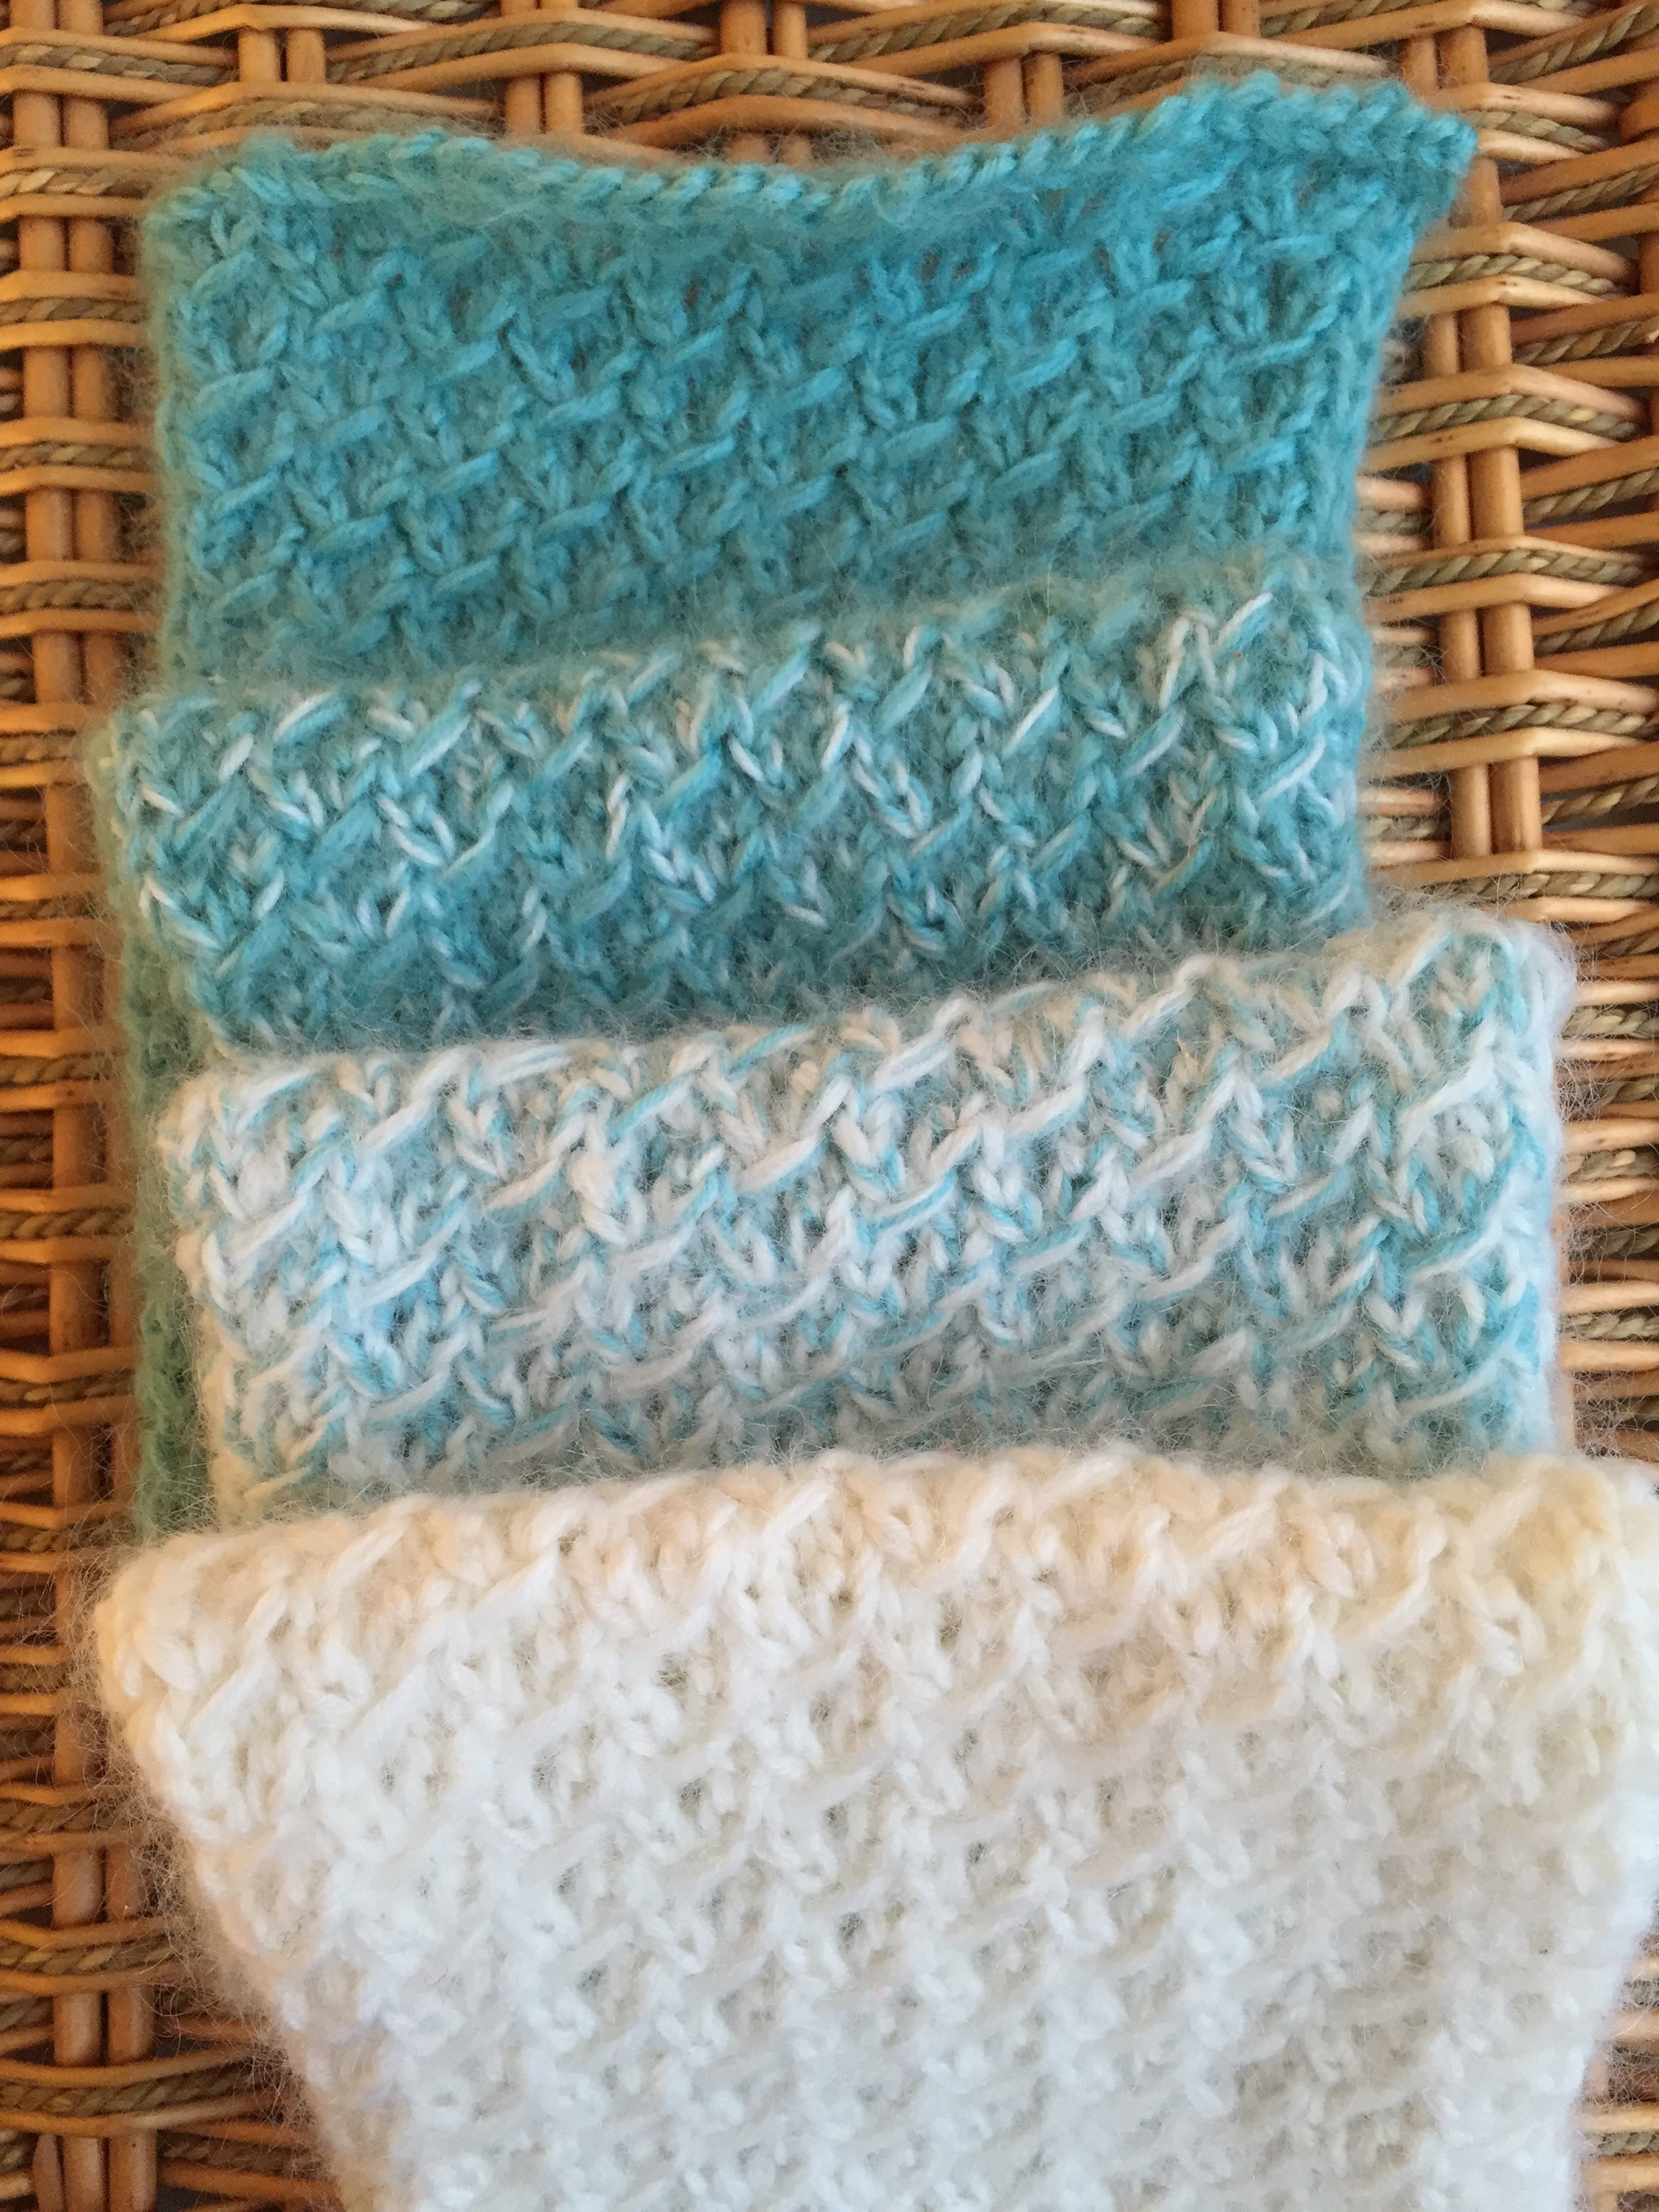 Beautiful Fuzzy Ombre Scarflet — A Free Knitting Pattern Free Knitting Of Charming 40 Pics Free Knitting